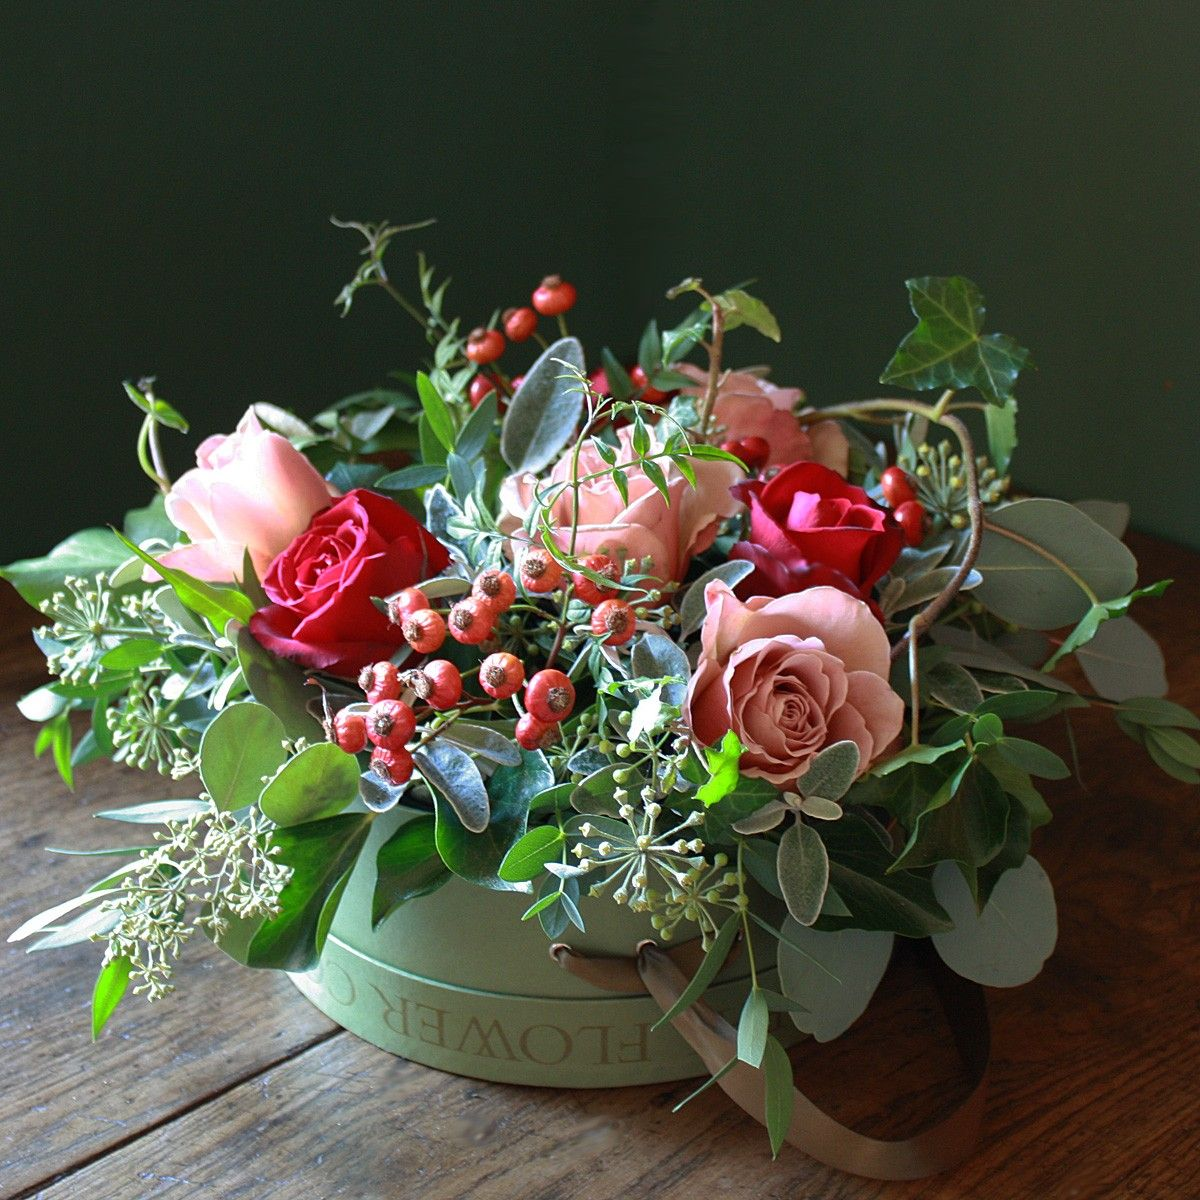 Hat Box Arrangement Filled With Red And Pink Roses, Herbs